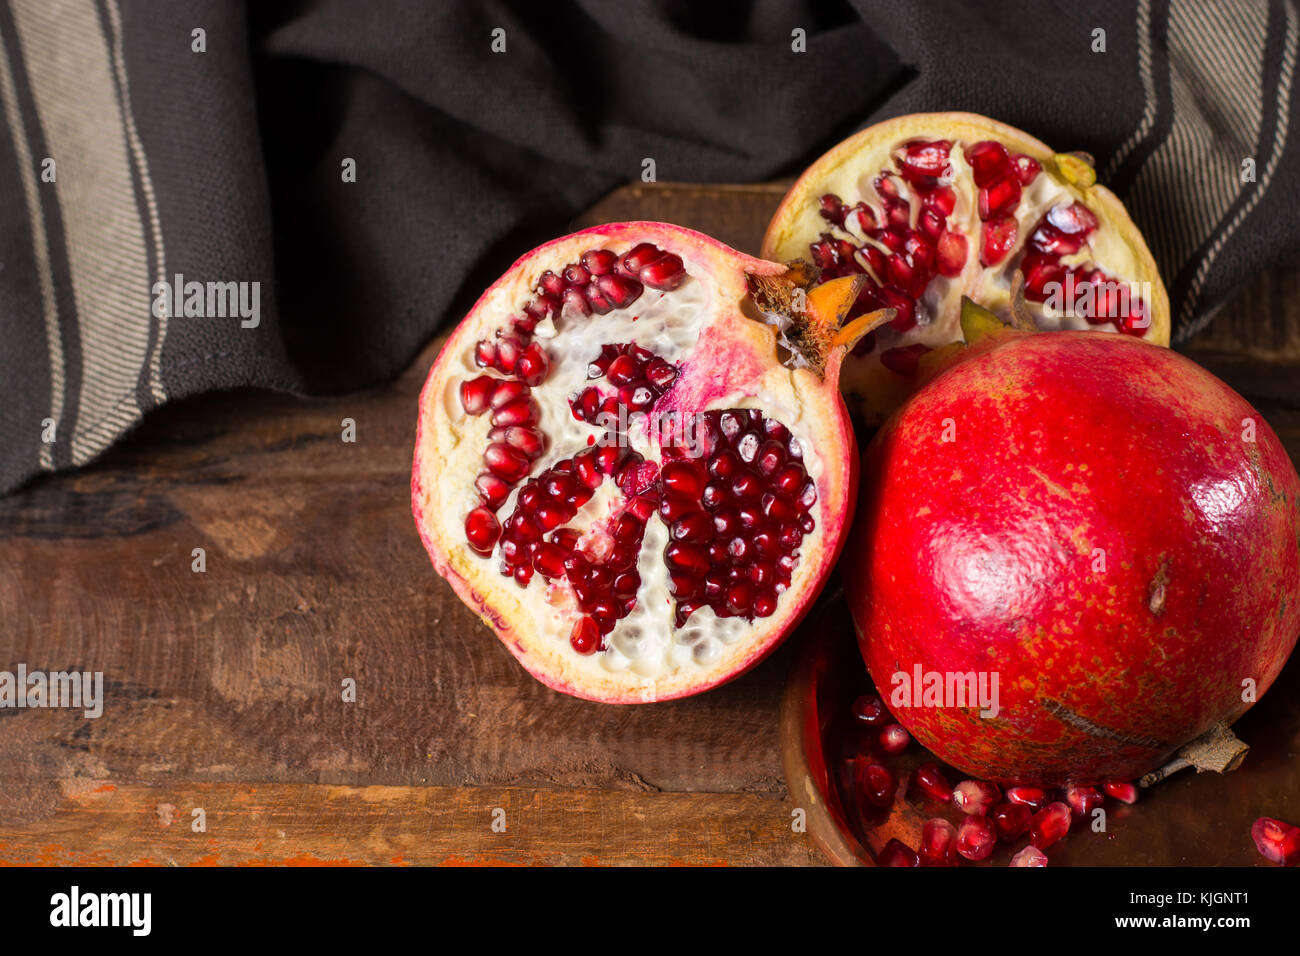 healthy fruit red pomegranate rich of vitamin c also known as a